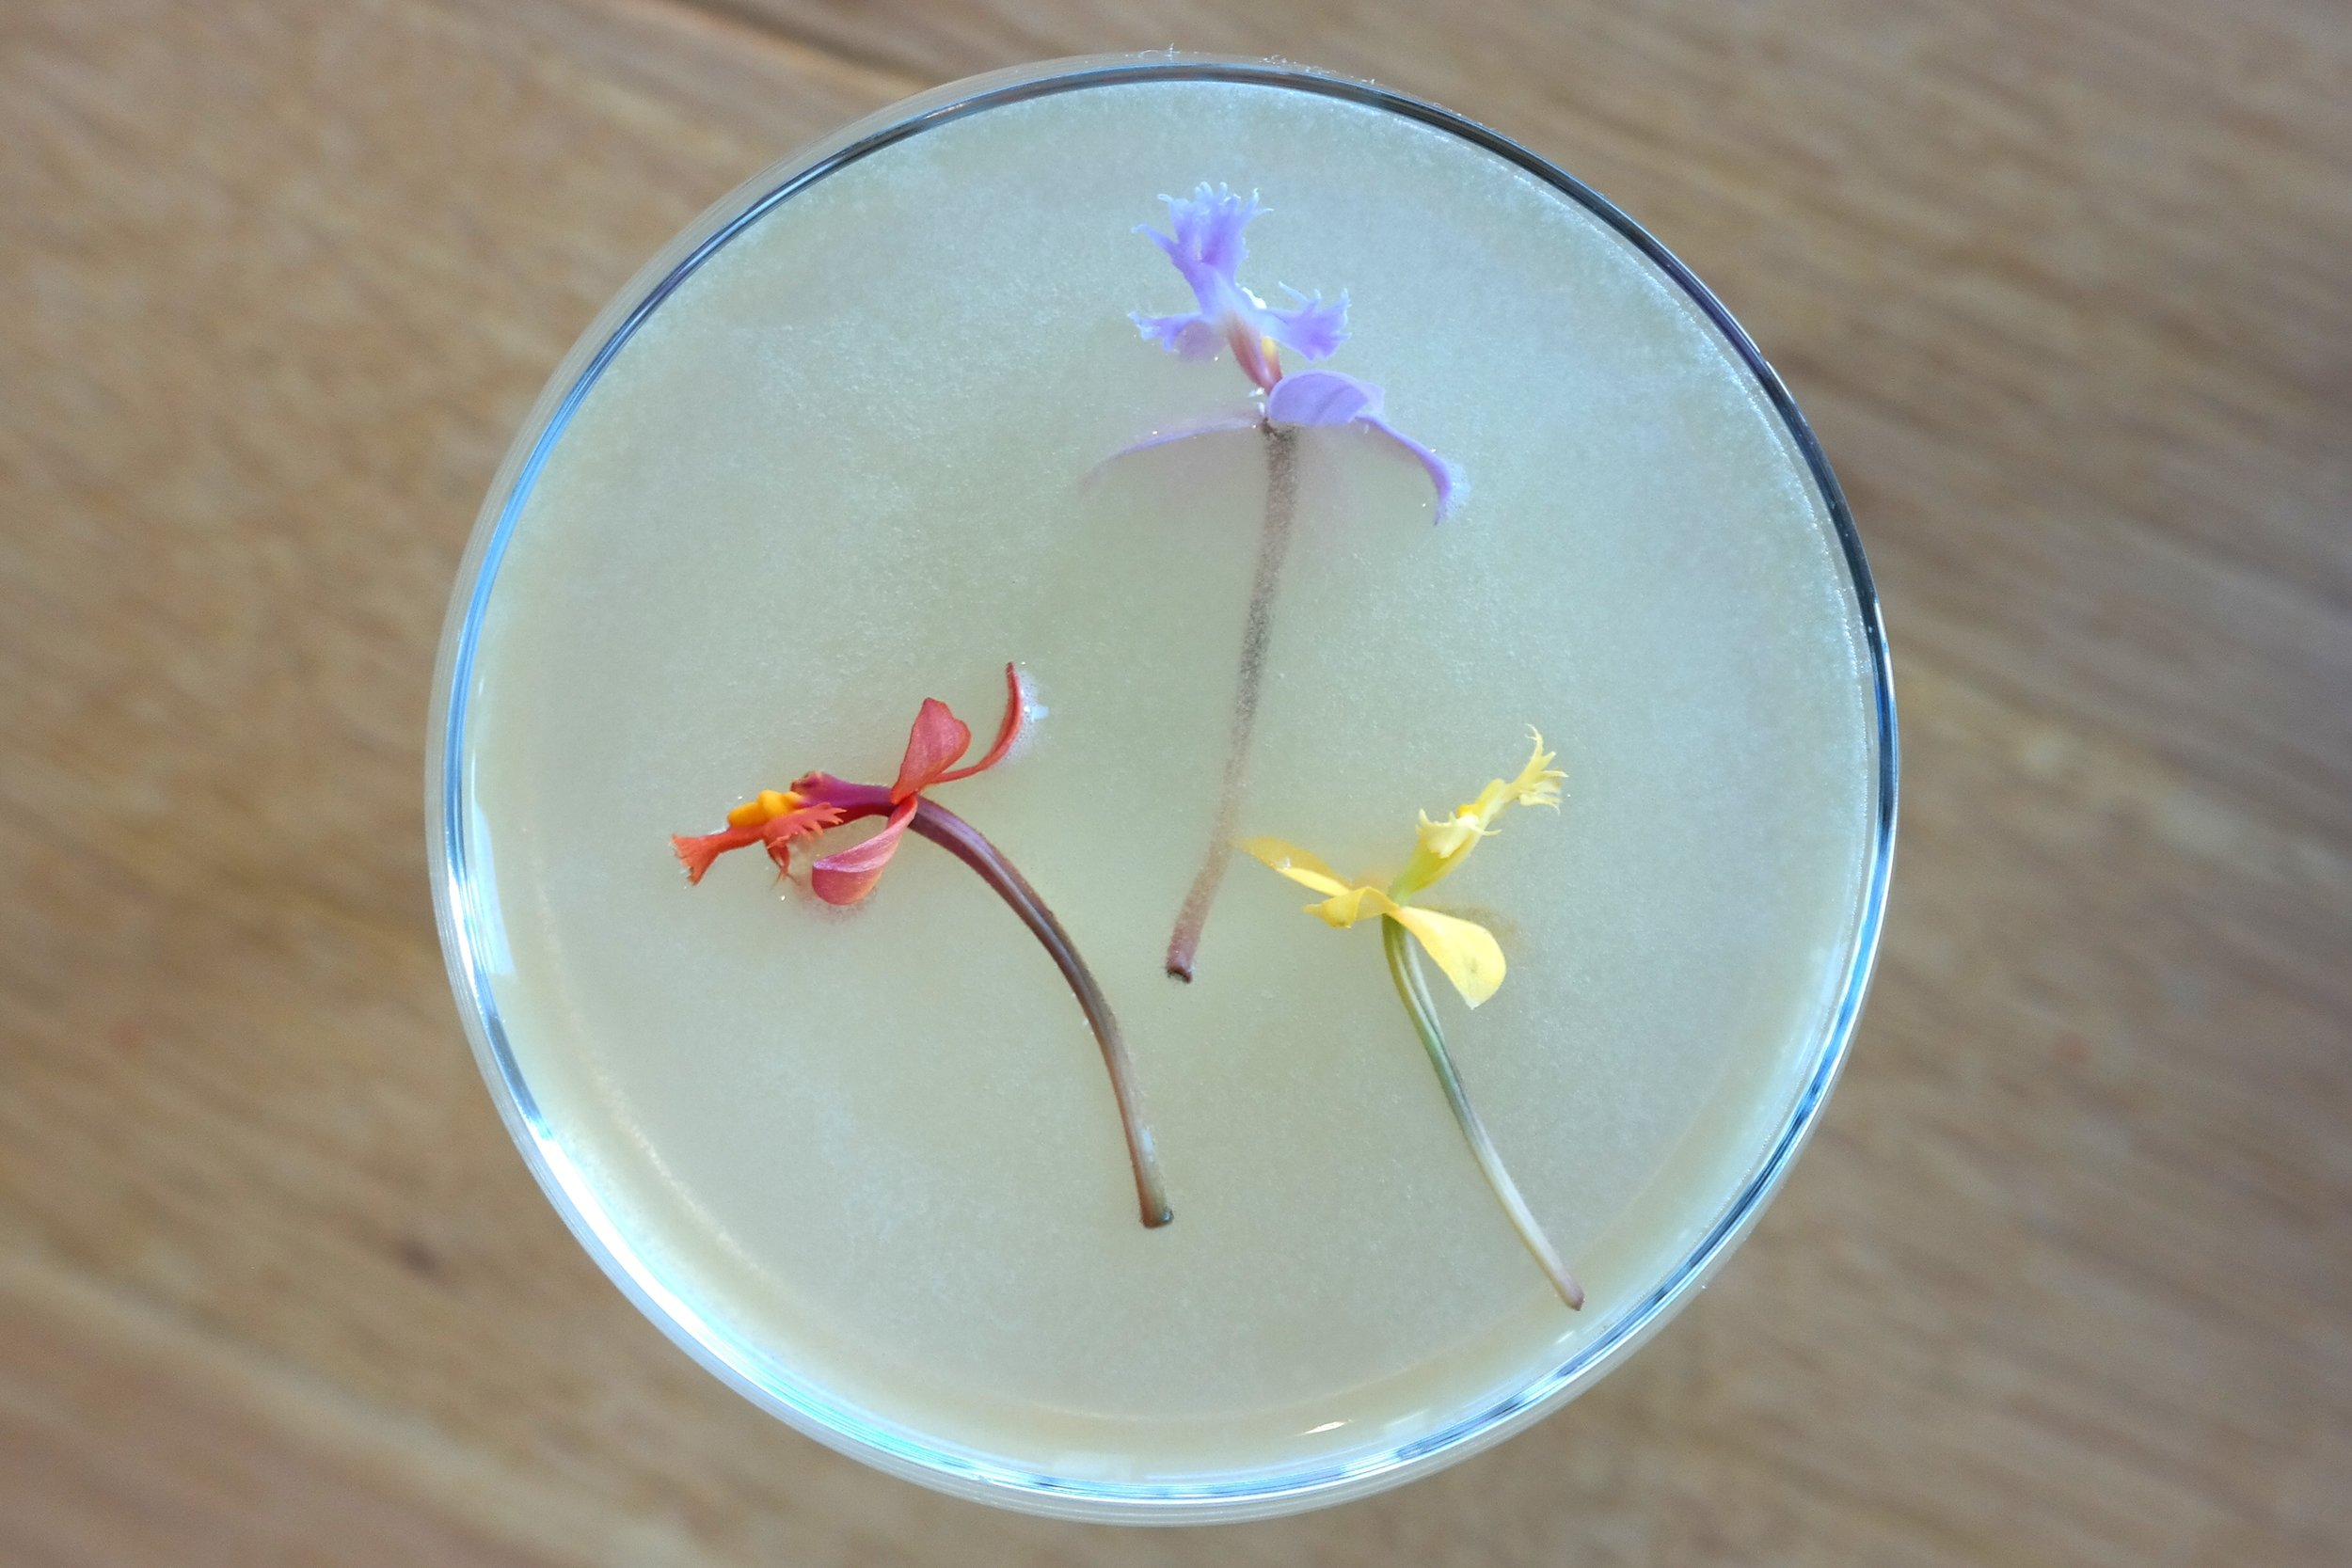 Pisco-Techa decorated with micro-orchids